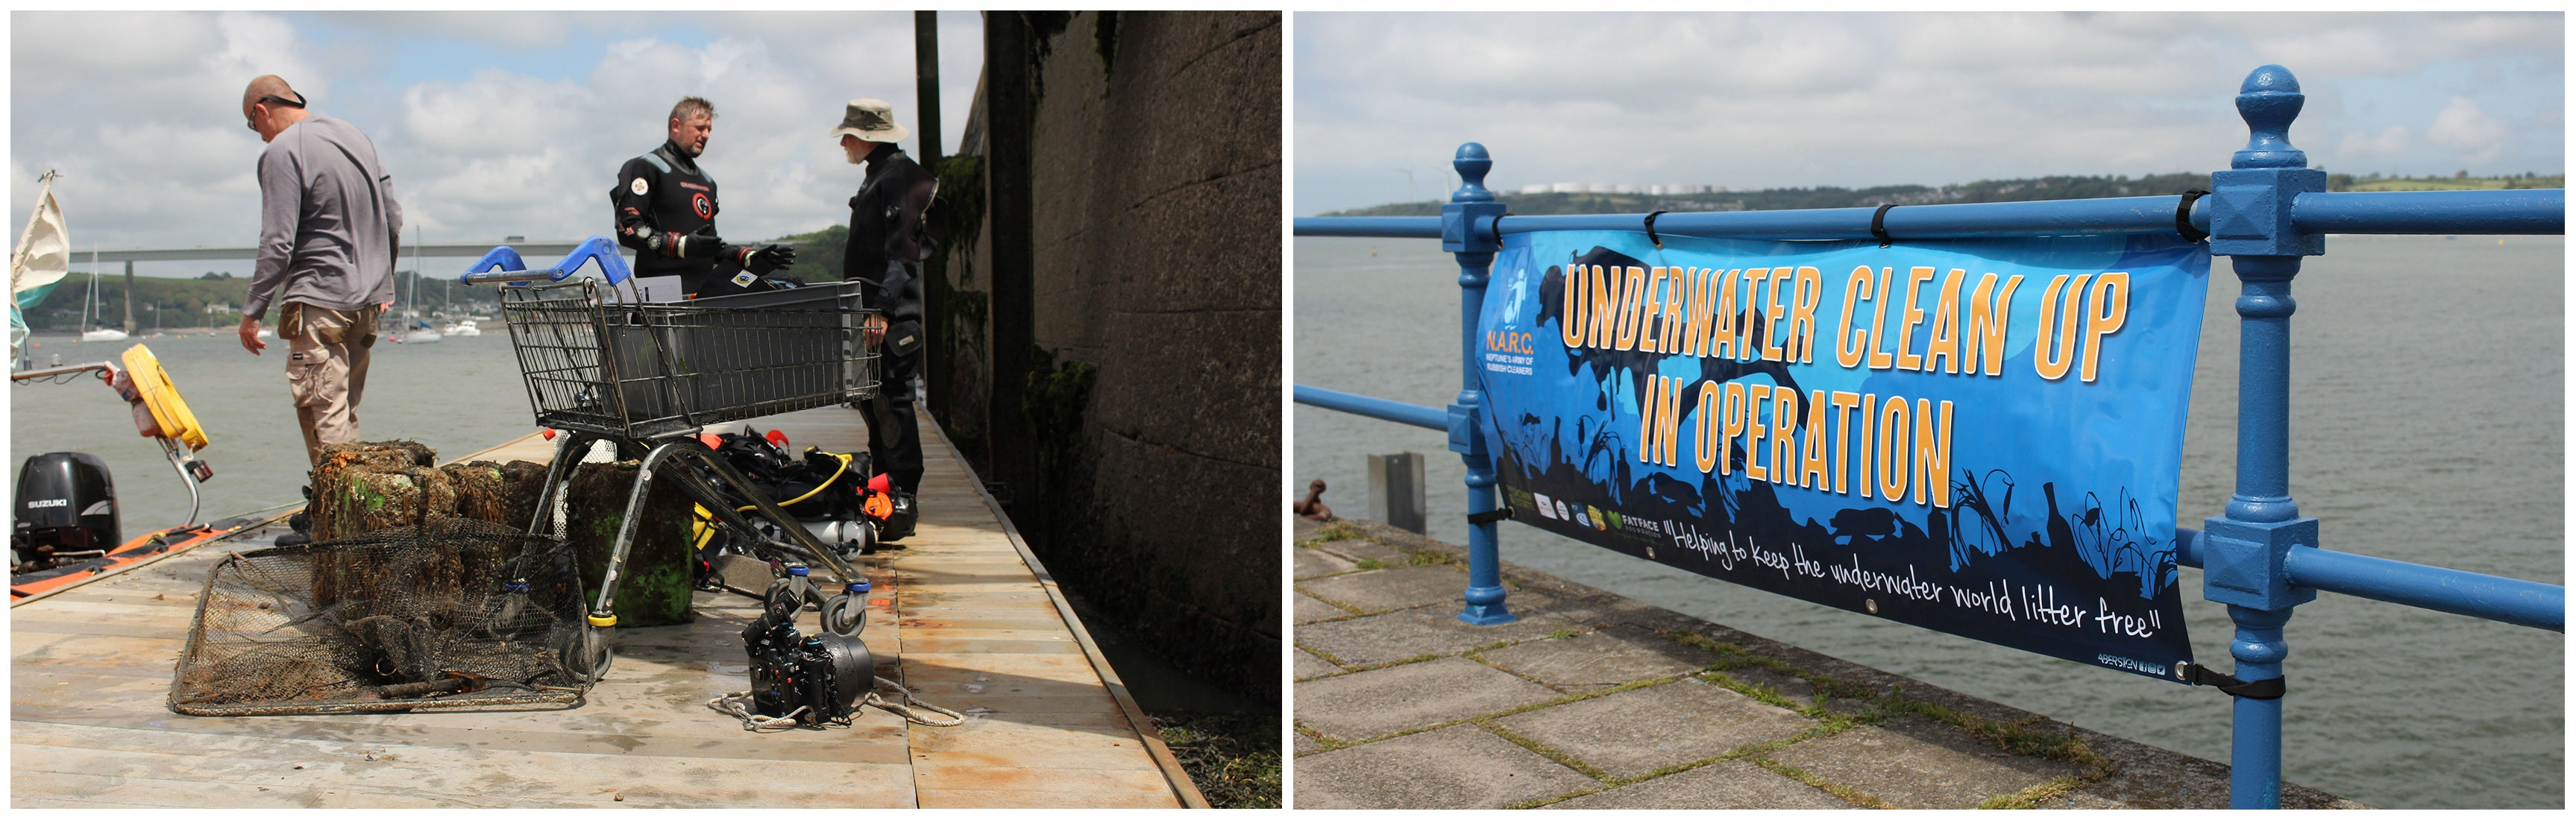 """Left: Marine litter on harbour wall including shopping cart, lobster pots and fishing net, Right: Banner tied to harbour fence saying """"Underwater Clean Up in Operation"""""""